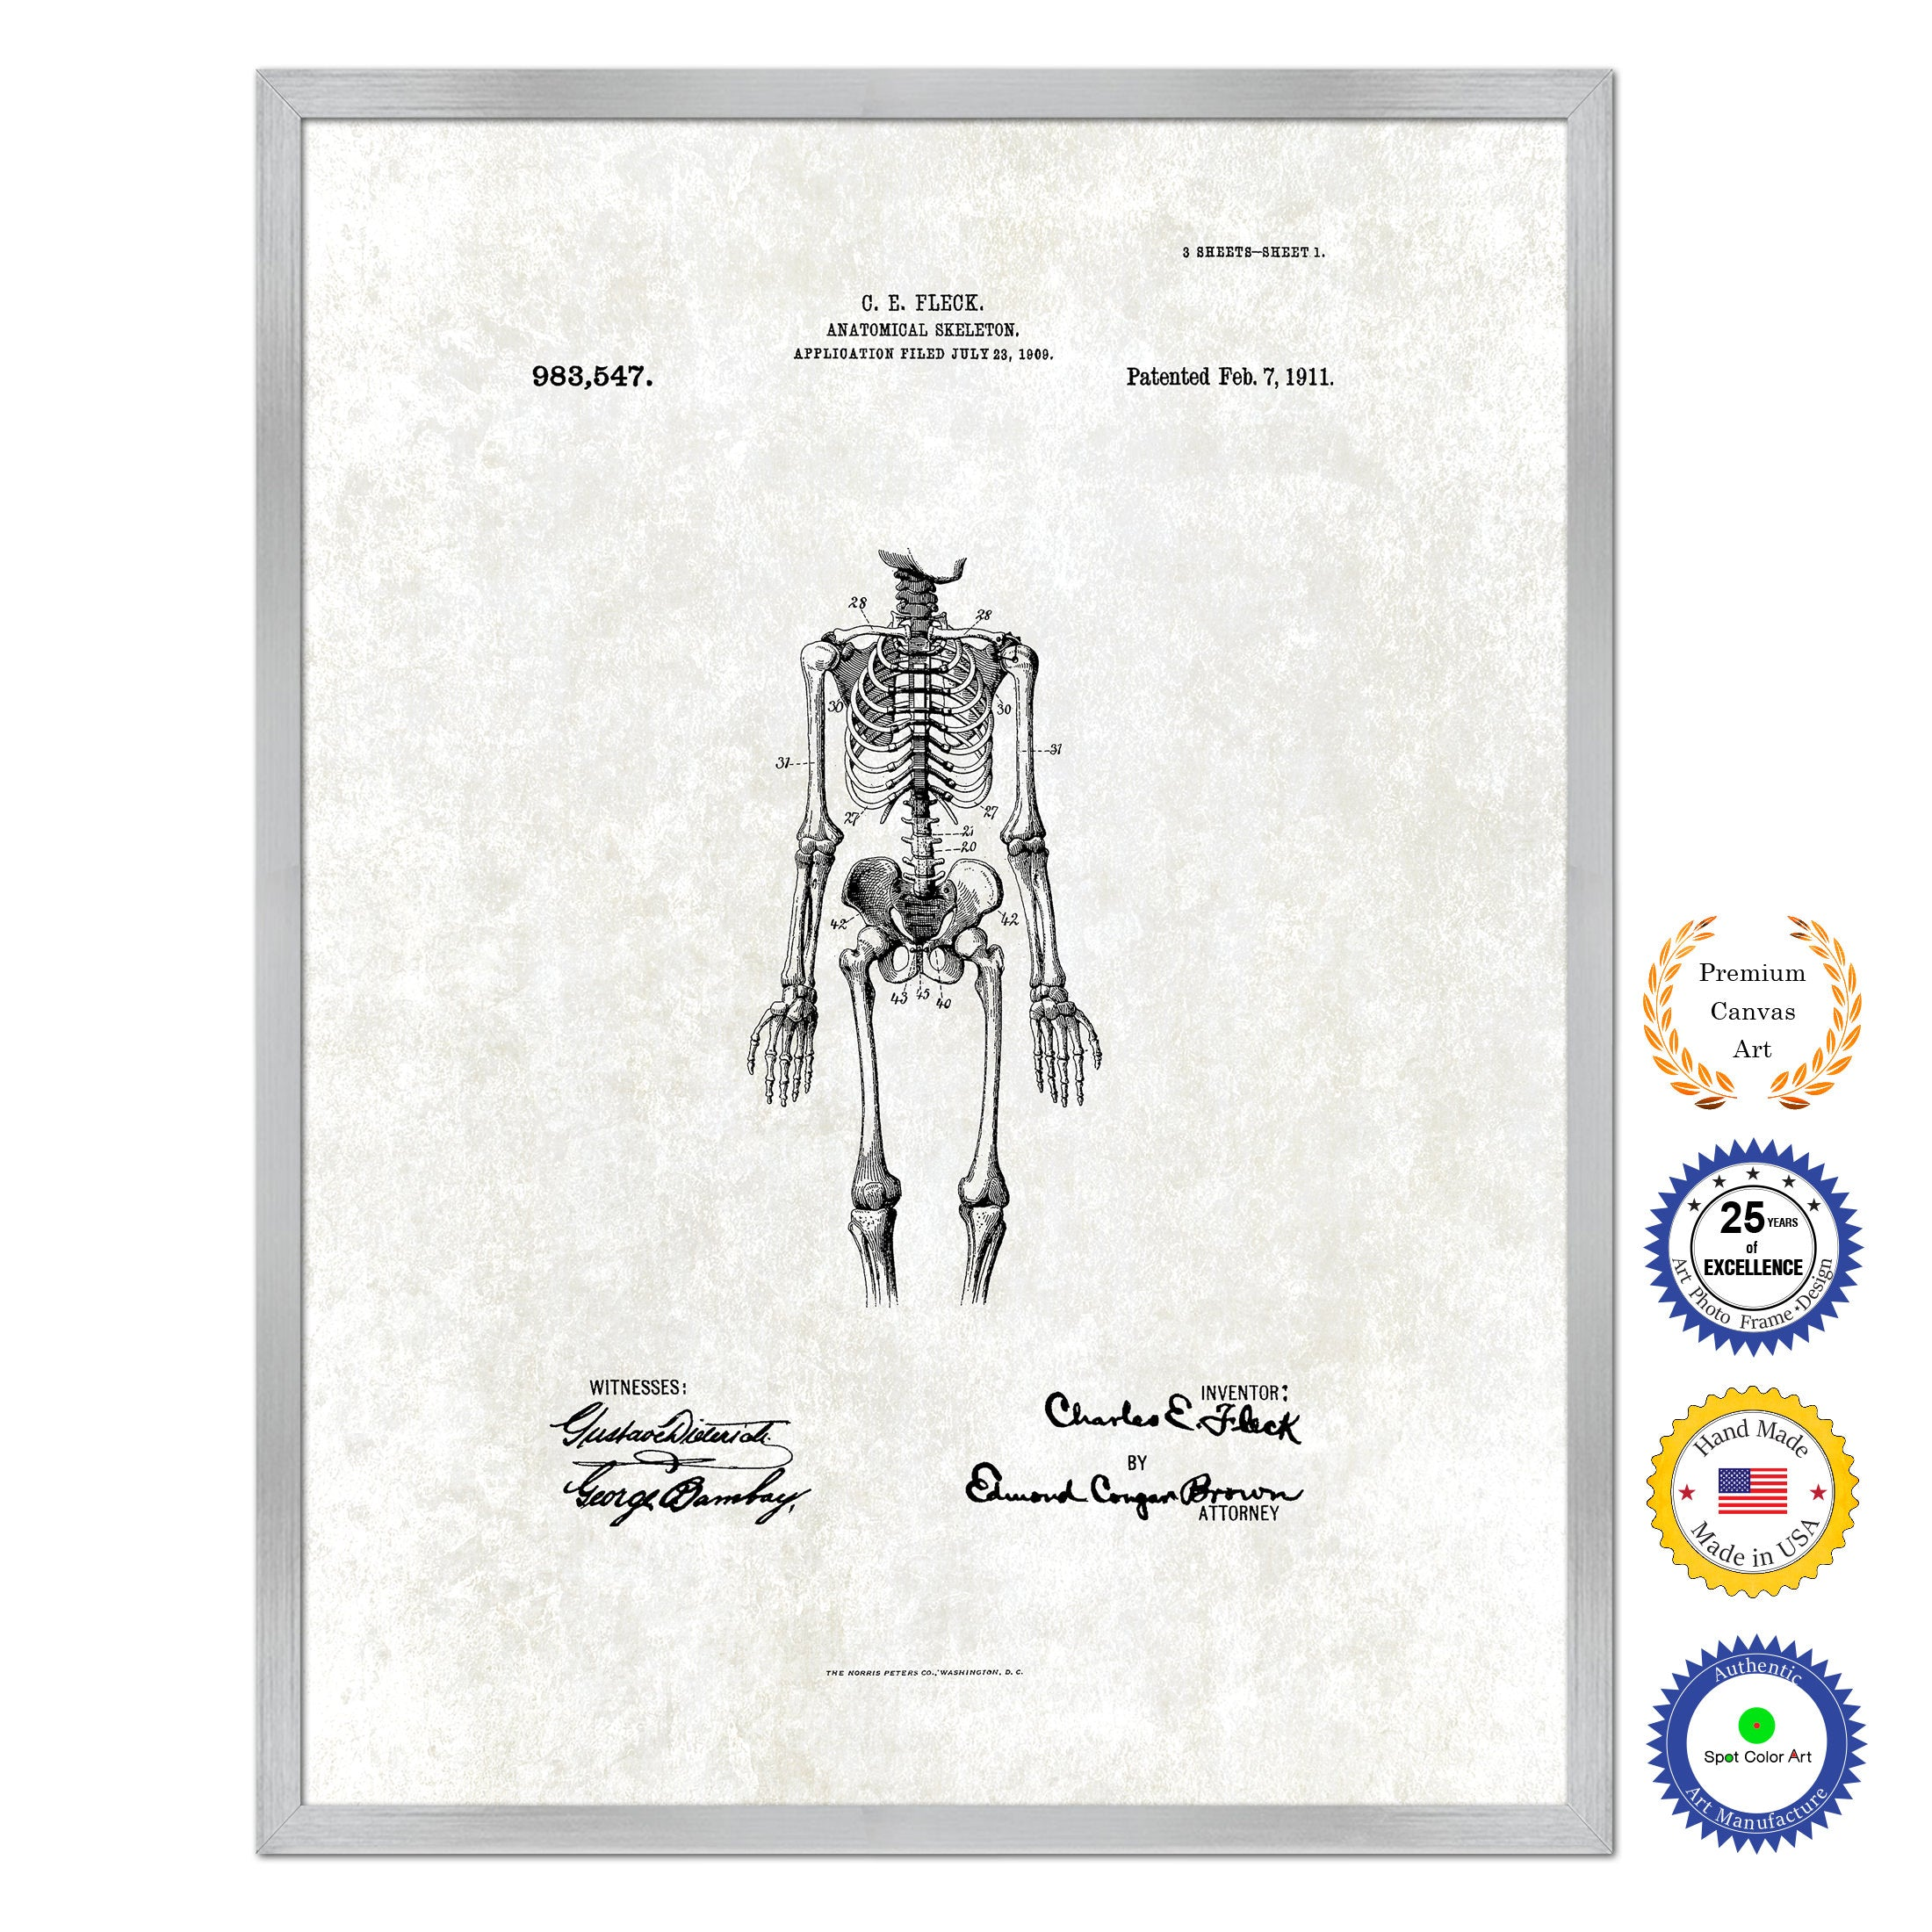 1911 Doctor Anatomical Skeleton Antique Patent Artwork Silver Framed Canvas Print Home Office Decor Great for Doctor Paramedic Surgeon Hospital Medical Student